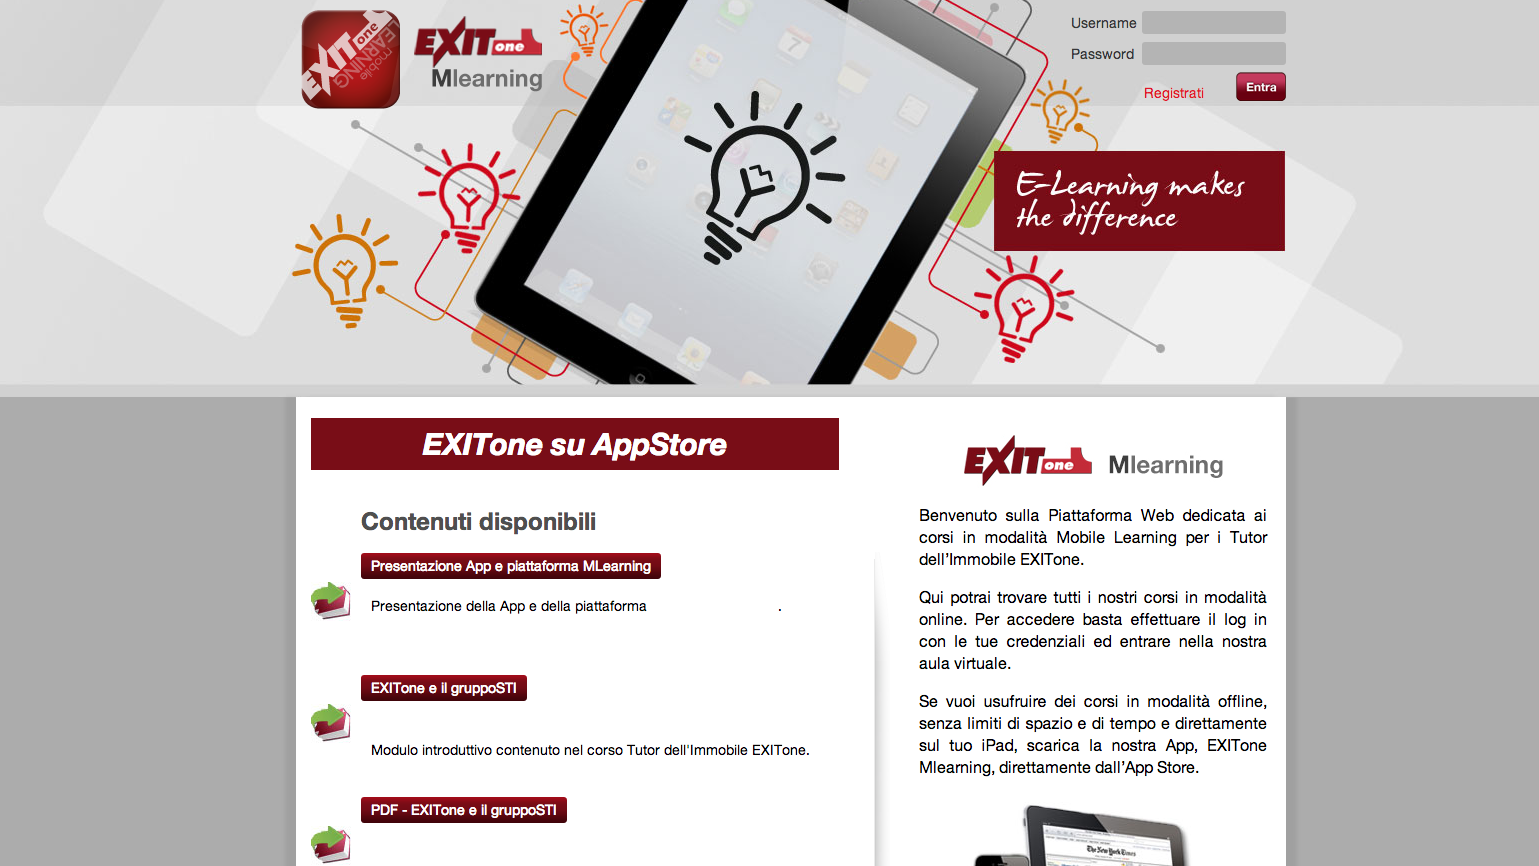 EXITone_1.png -